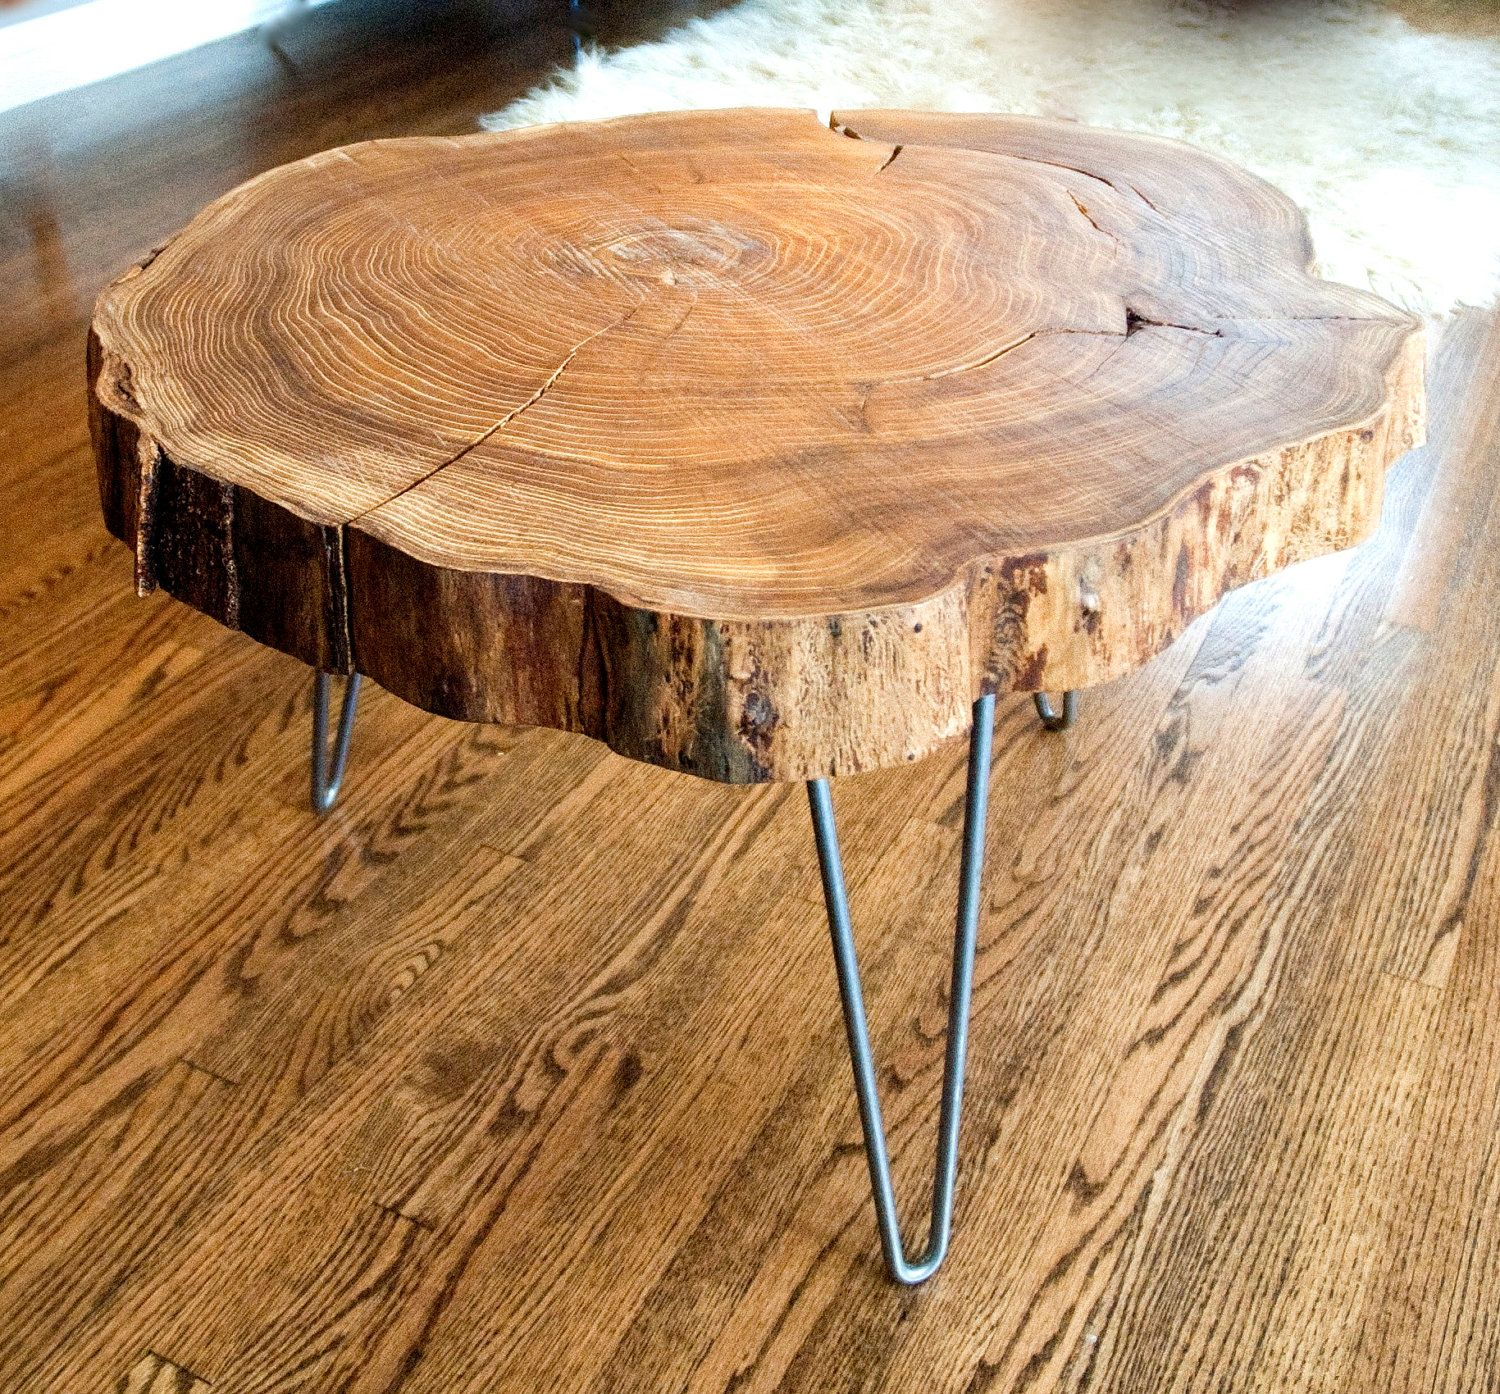 Hairpin Legs On Slab Table Round Log Coffee Table Eclectic